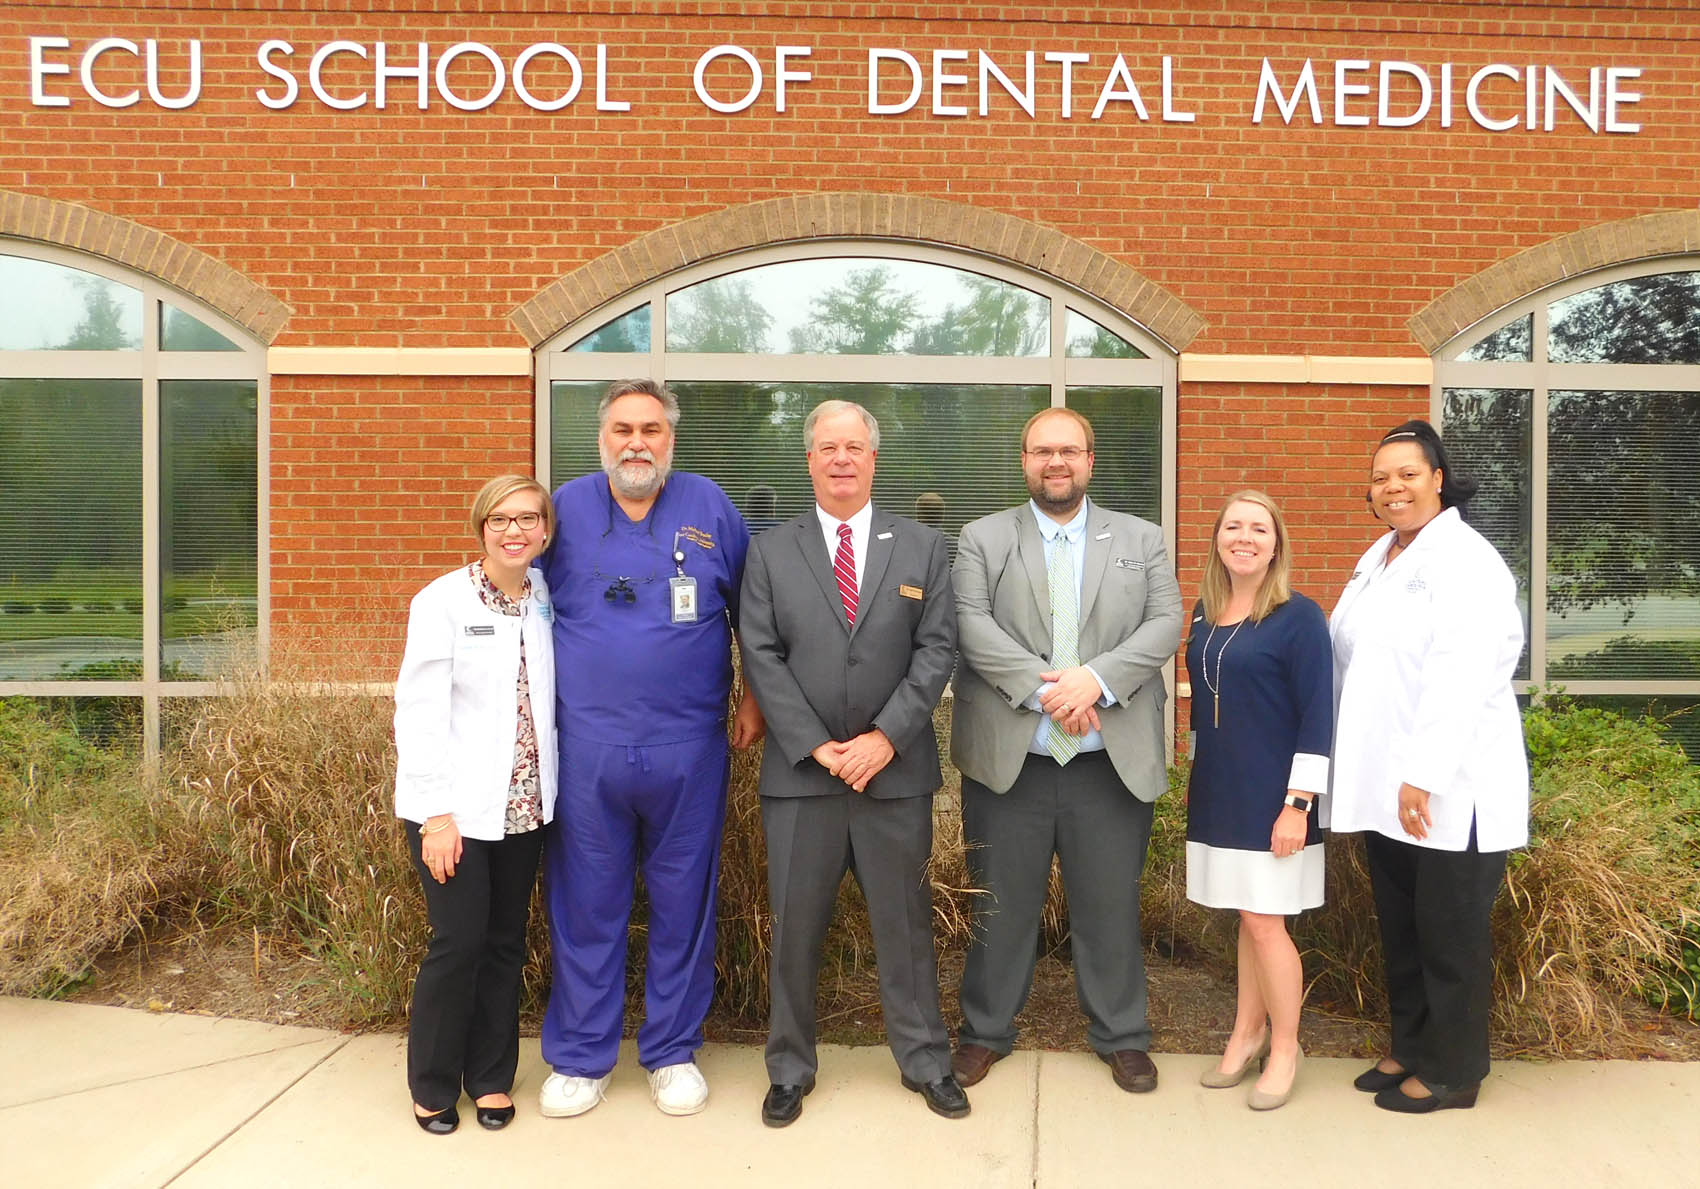 Click to enlarge,  The Central Carolina Community College Dental Programs have begun a new partnership with the East Carolina University School of Dental Medicine's Community Service Learning Center in Lillington. Pictured are, left to right: Danielle Bruner, CCCC Dental Hygiene Clinical Coordinator/Instructor; Dr. Michael Bradley, Clinical Assistant Professor and Director of Dentistry with the ECU School of Dental Medicine's Community Service Learning Center in Lillington; Dr. T. Eston Marchant, CCCC President; Dr. Brian Merritt, CCCC Vice President of Learning and Workforce Development; Lisa Godfrey, CCCC Dean of Health Sciences and Human Services; and Dr. Fernanda Perry, CCCC Dental Assisting/Hygiene Instructor.